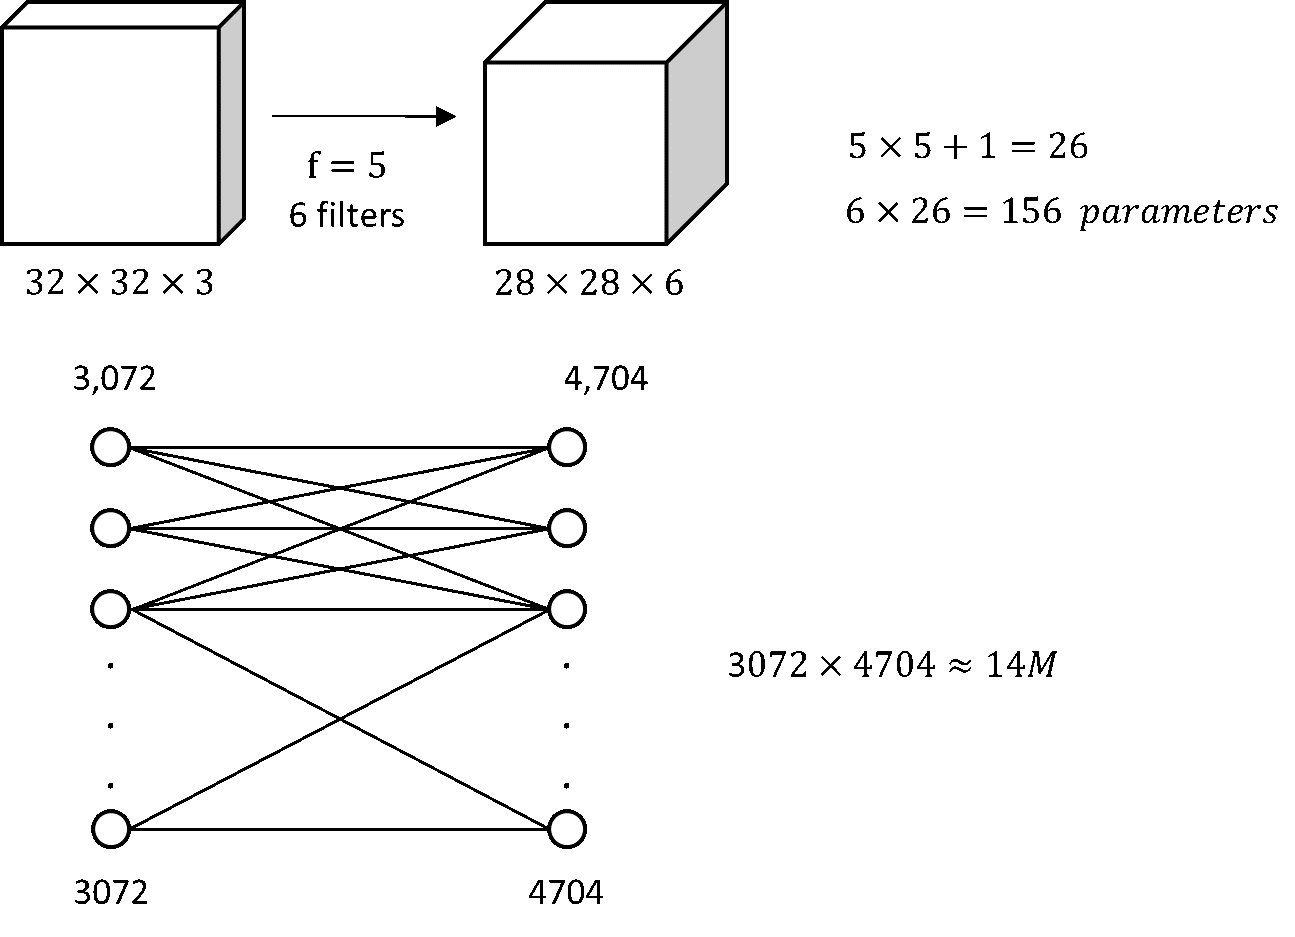 The main advantage of Conv layers over Fully connected layers is number of parameters to be learned